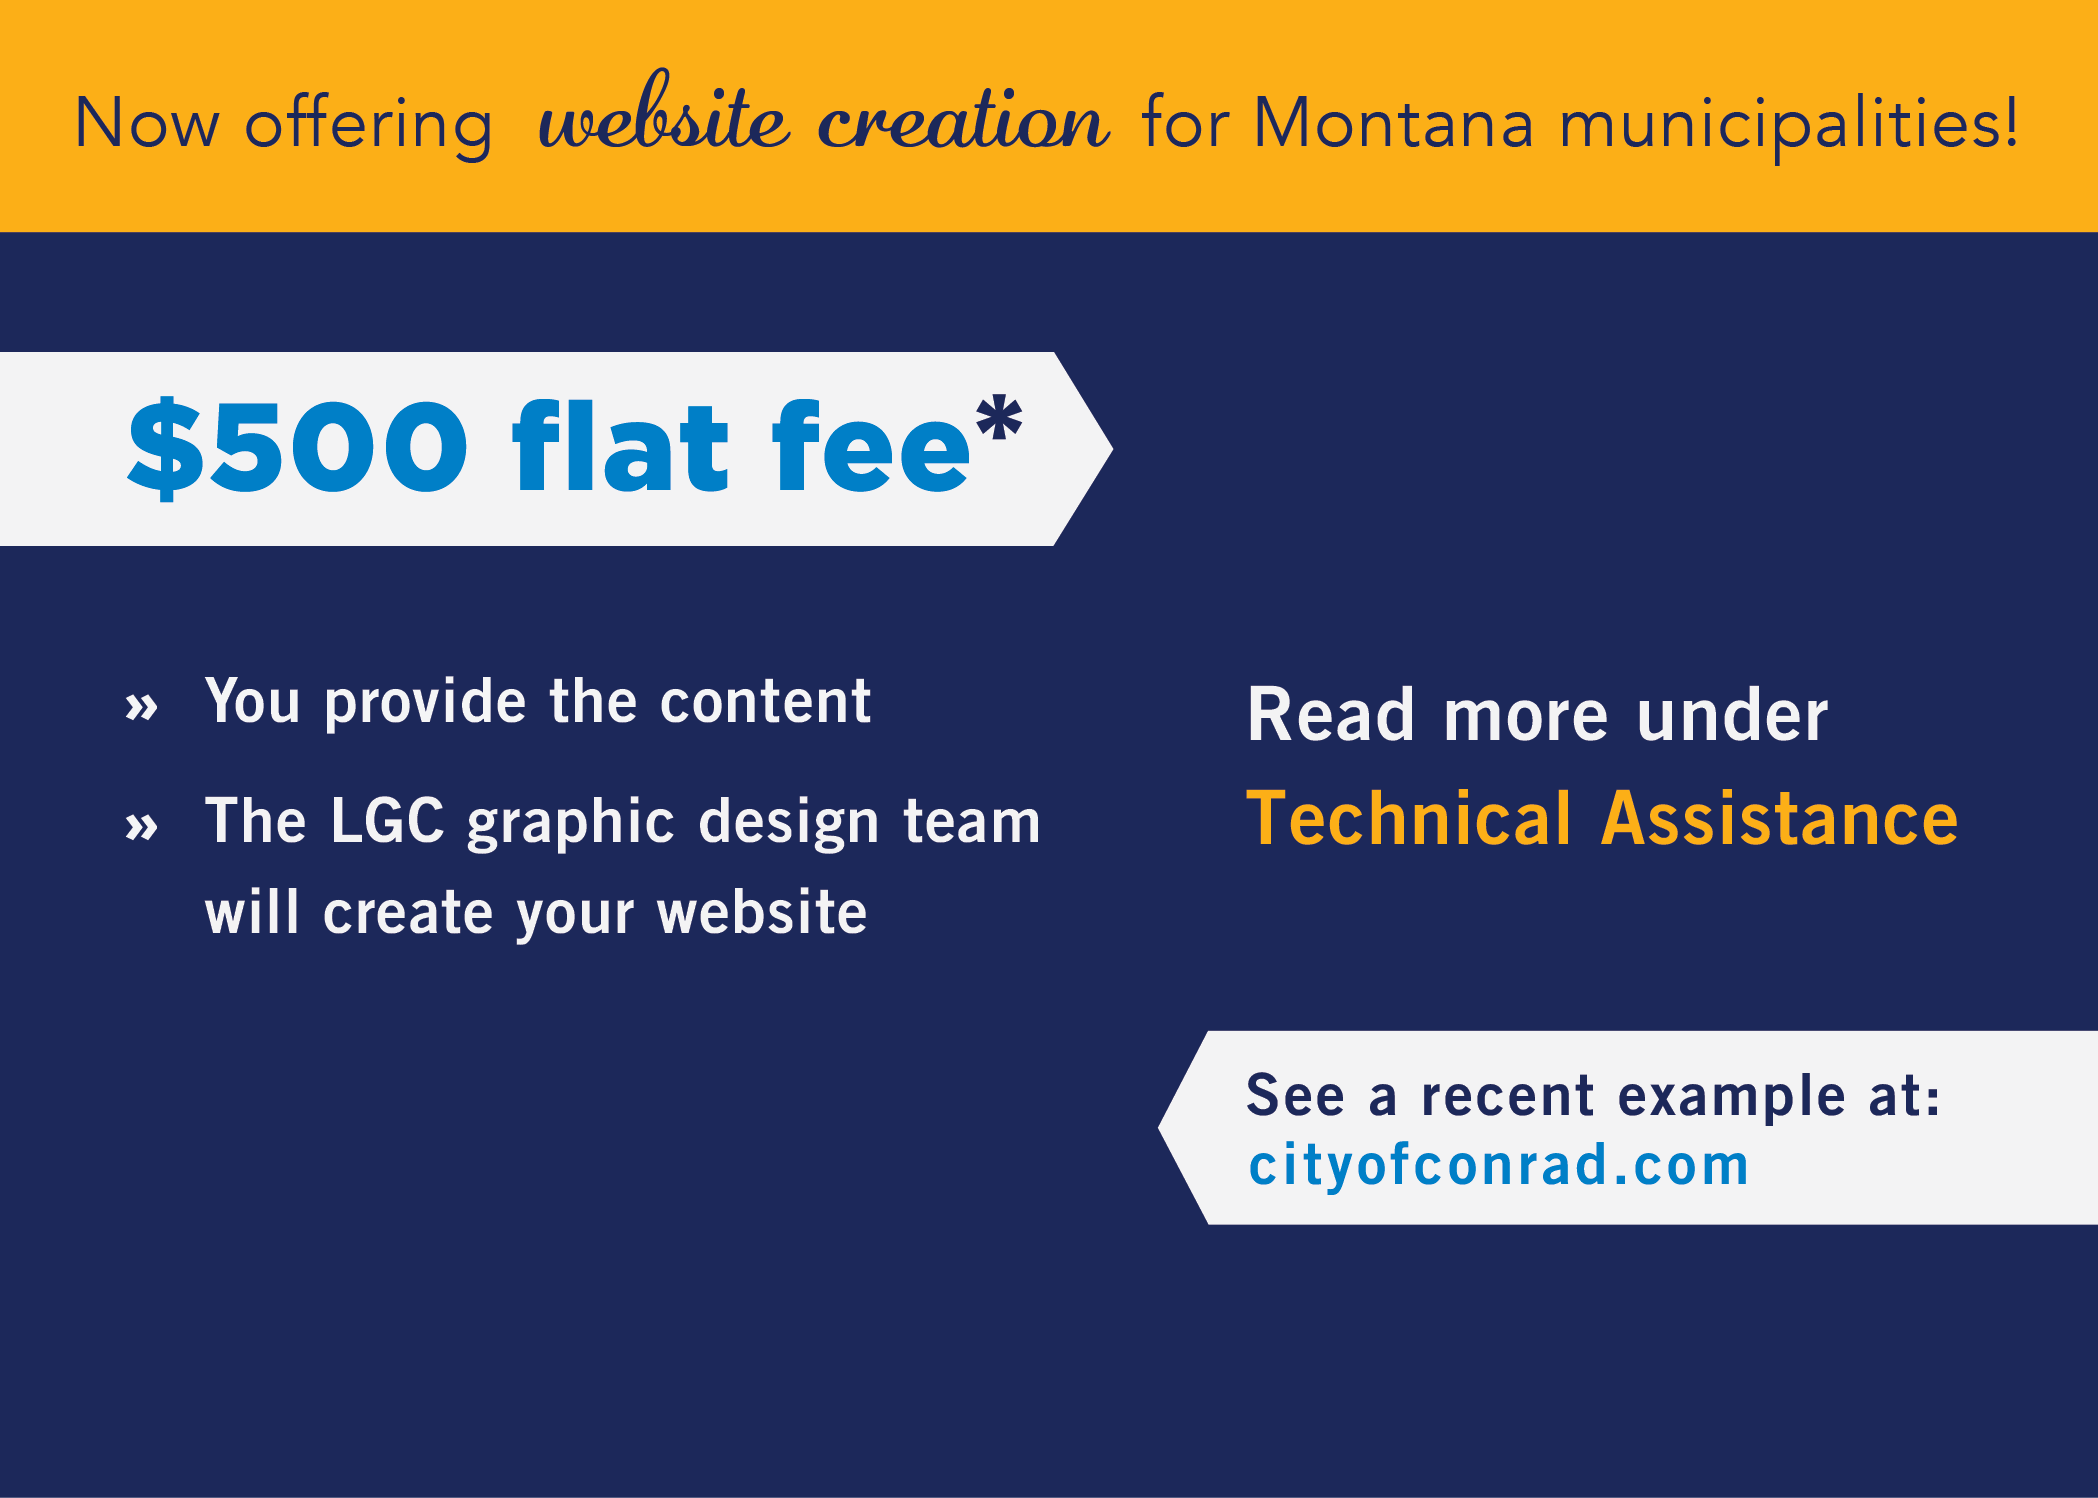 Now offering website creation for Montana municipalities$500 flat feeYou provide the contentThe LGC graphic design team will create you websiteRead more under Technical AssistanceSee a recent example at cityofconrad.com